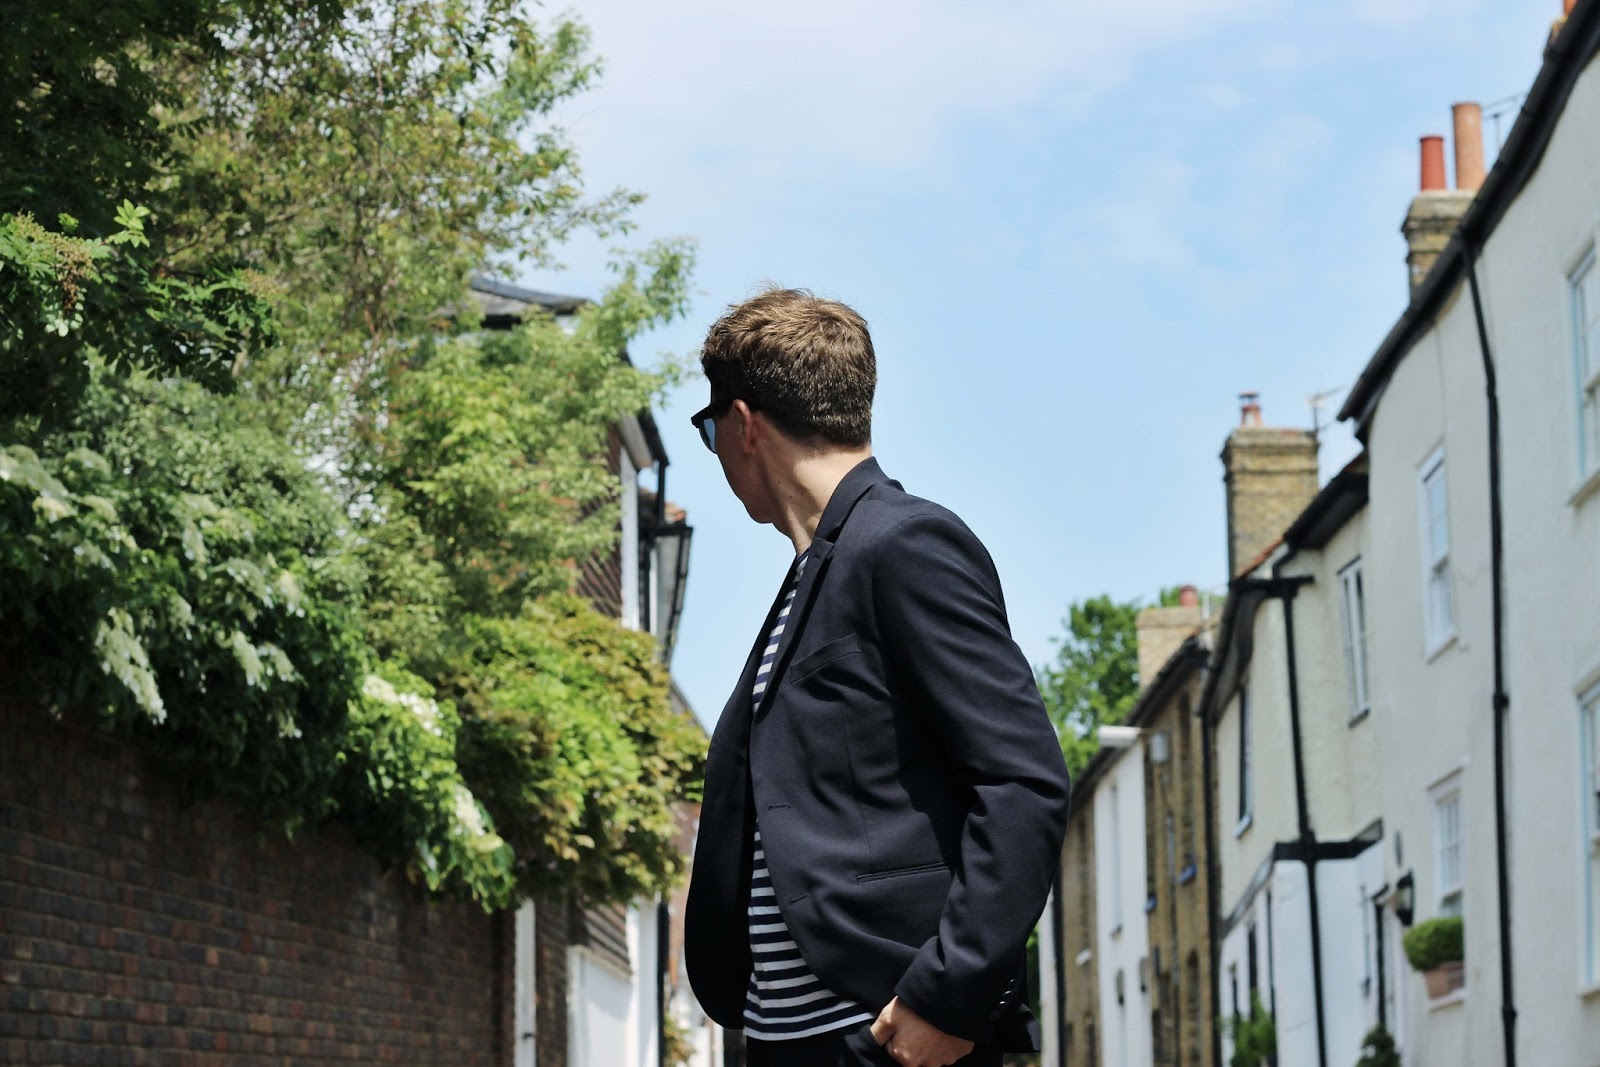 mens fashion blog about styling tailoring